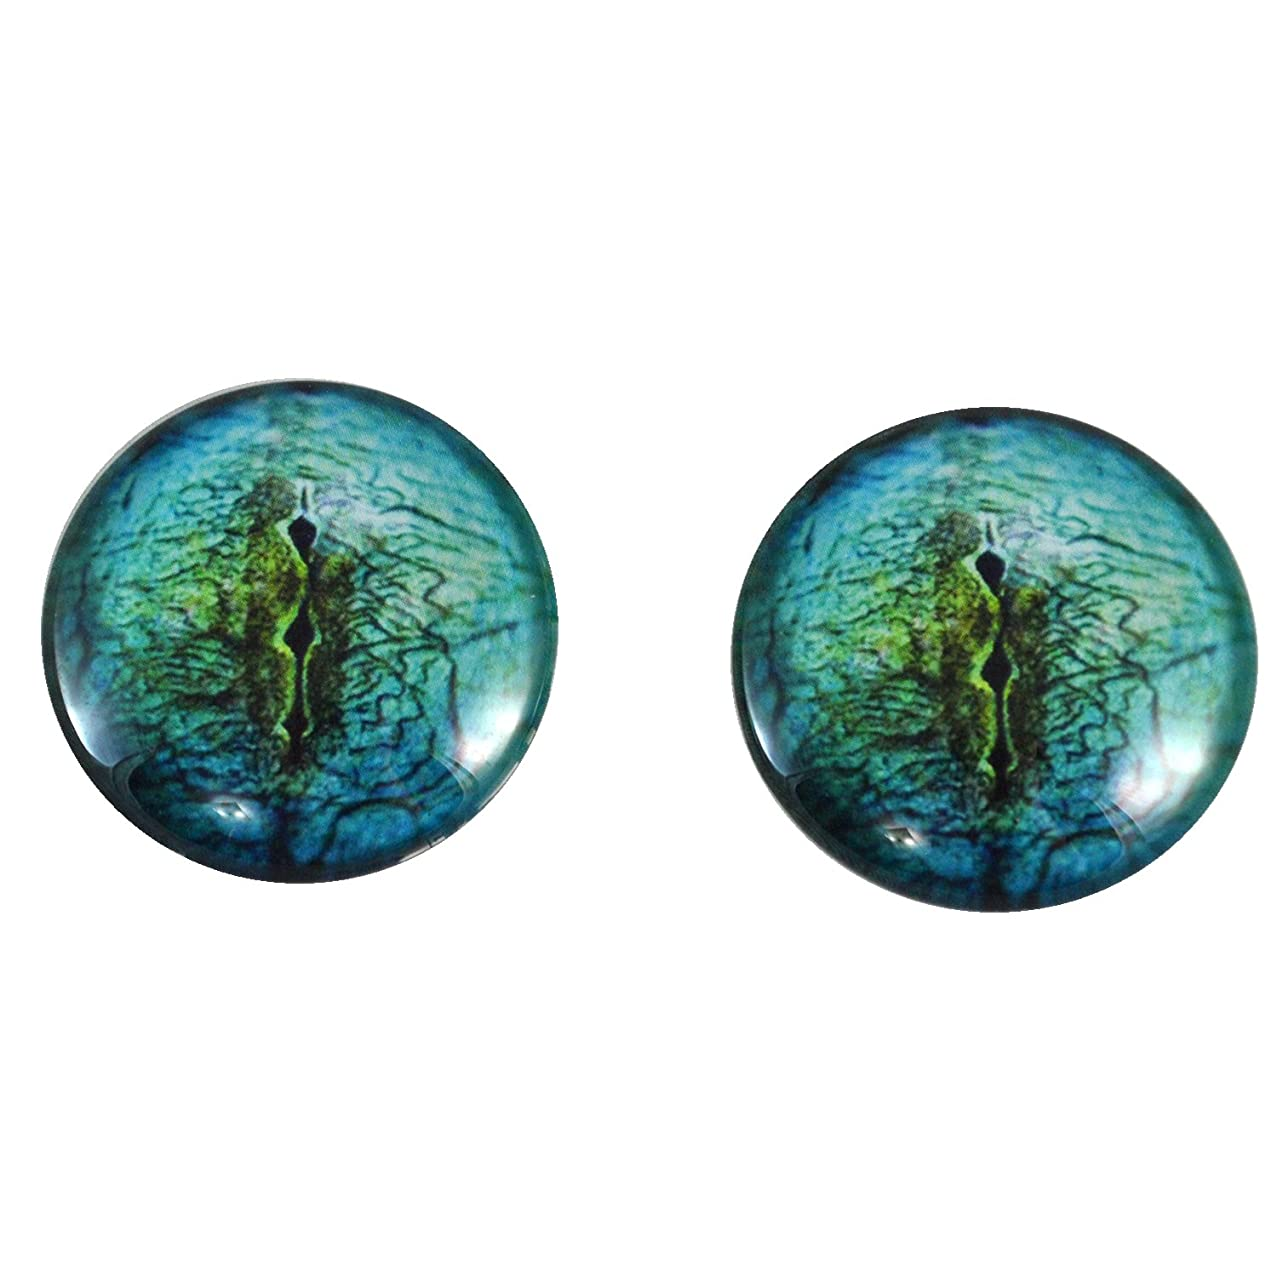 40mm Pair of LargeBlue Lizard Glass Eyes, for Jewelry making, Arts Dolls, Sculptures, and More